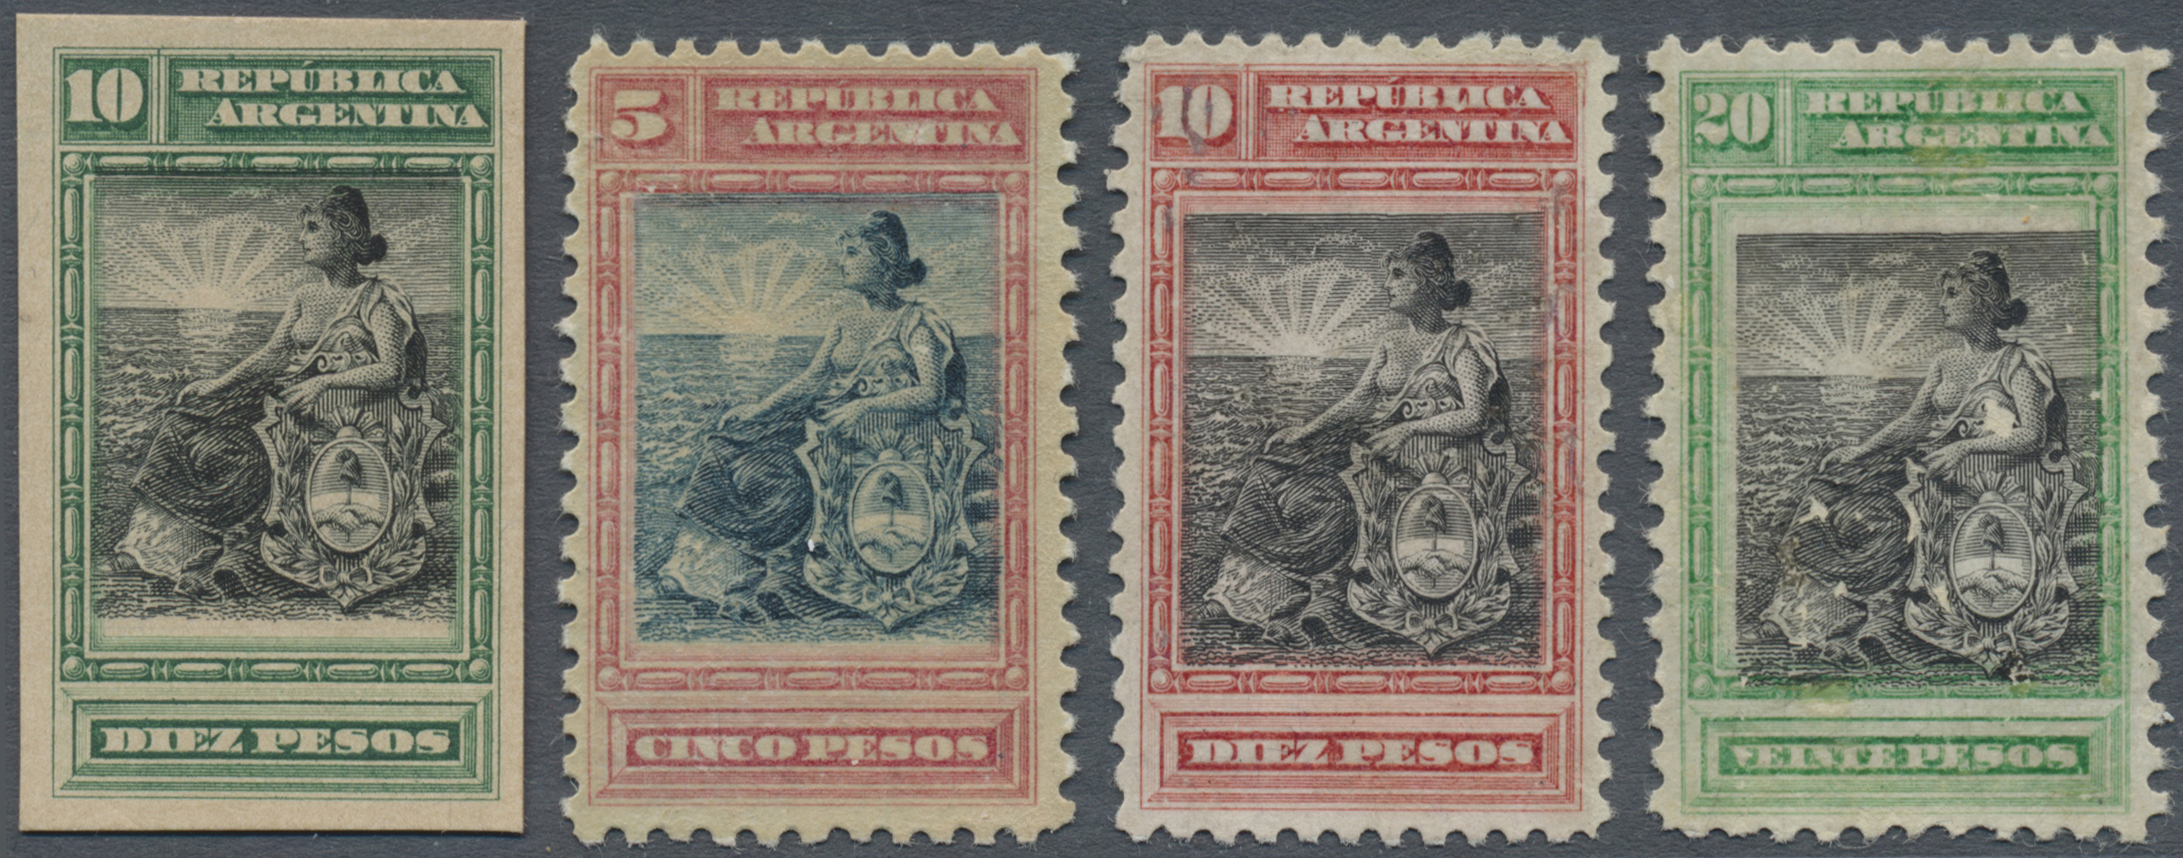 Lot 13183 - argentinien  -  Auktionshaus Christoph Gärtner GmbH & Co. KG Single lots Philately Overseas & Europe. Auction #39 Day 4